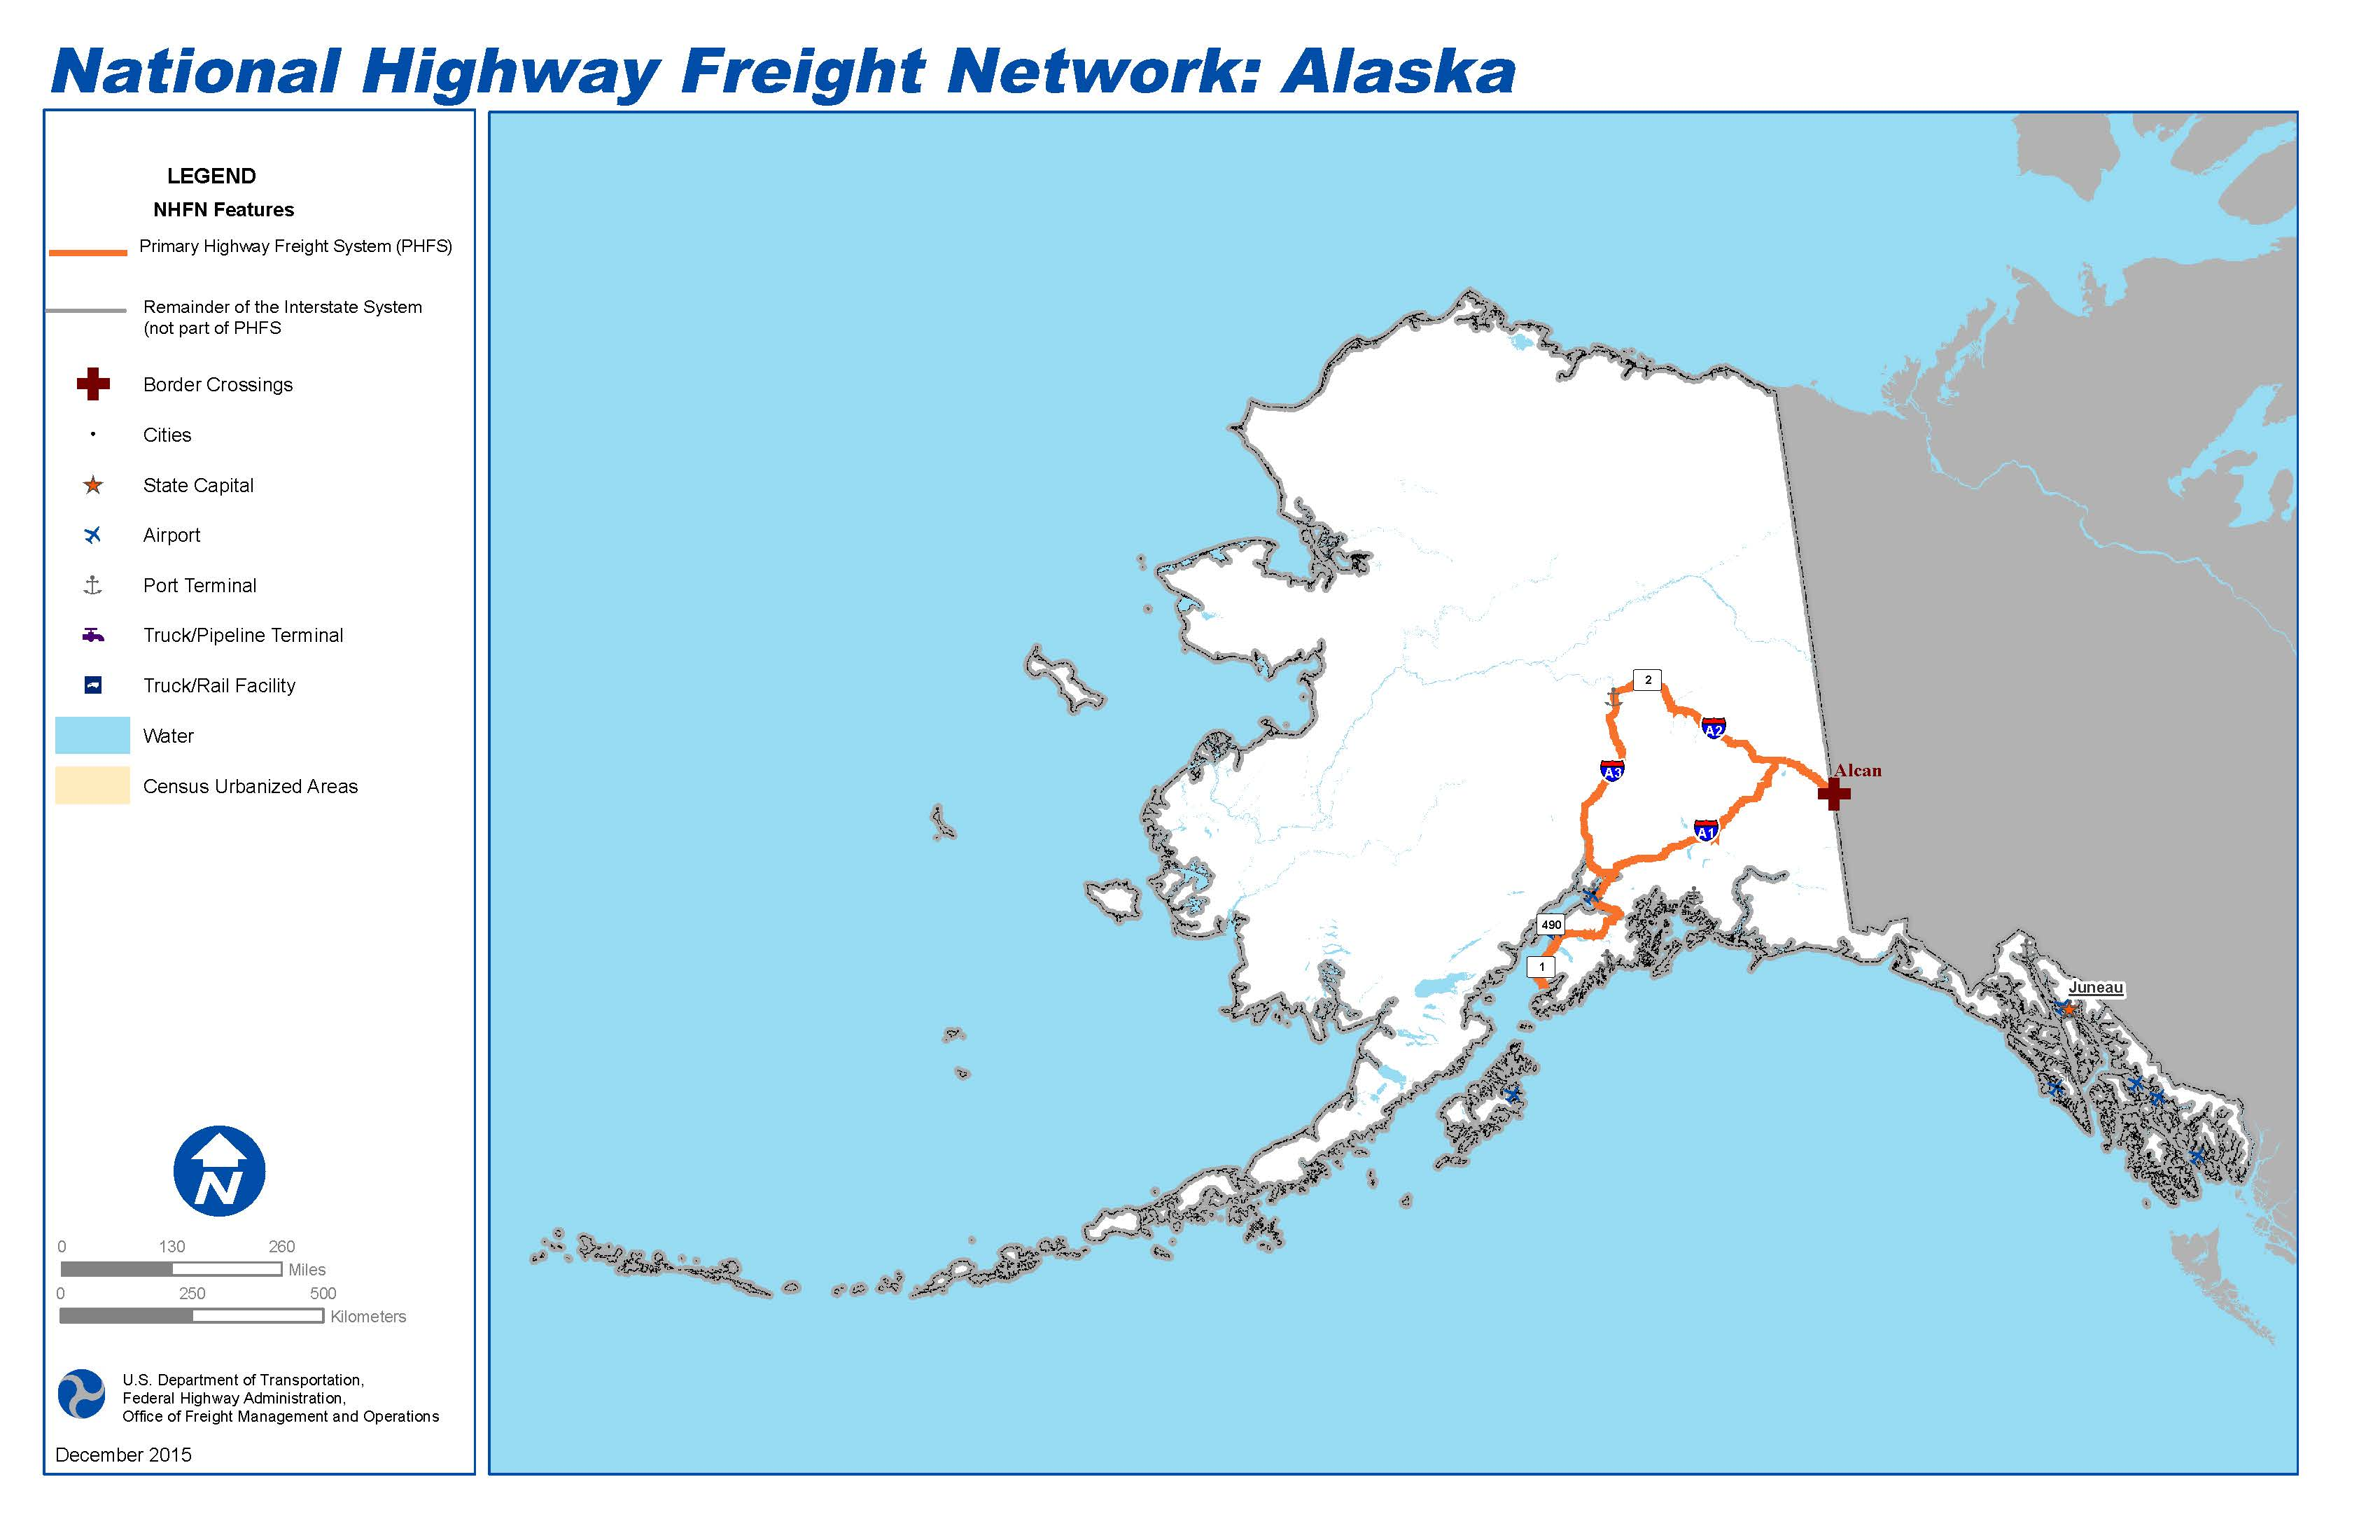 National Highway Freight Network Map and Tables for Alaska ... on map california highway, delta junction, map of south central alaska, map of chicago highway, map of alaska railroad, pan-american highway, richardson highway, top of the world highway, map of russia and alaska, map of alaska and canada, map of alaska black and white, map of alaska range, motels alaska highway, trans-alaska pipeline system, traveling the alcan highway, map of alaska road system, map of alaska purchase, fort st. john, map of alaska waters, map alaska highway road systems, fort nelson, yukon river, map of florida highway, map of colorado highway, dempster highway, building the alaska highway, dawson creek, klondike highway, map of alcan highway, klondike gold rush, watson lake, prince george, dalton highway, dawson city, map of upper michigan highway, map of west coast highway,